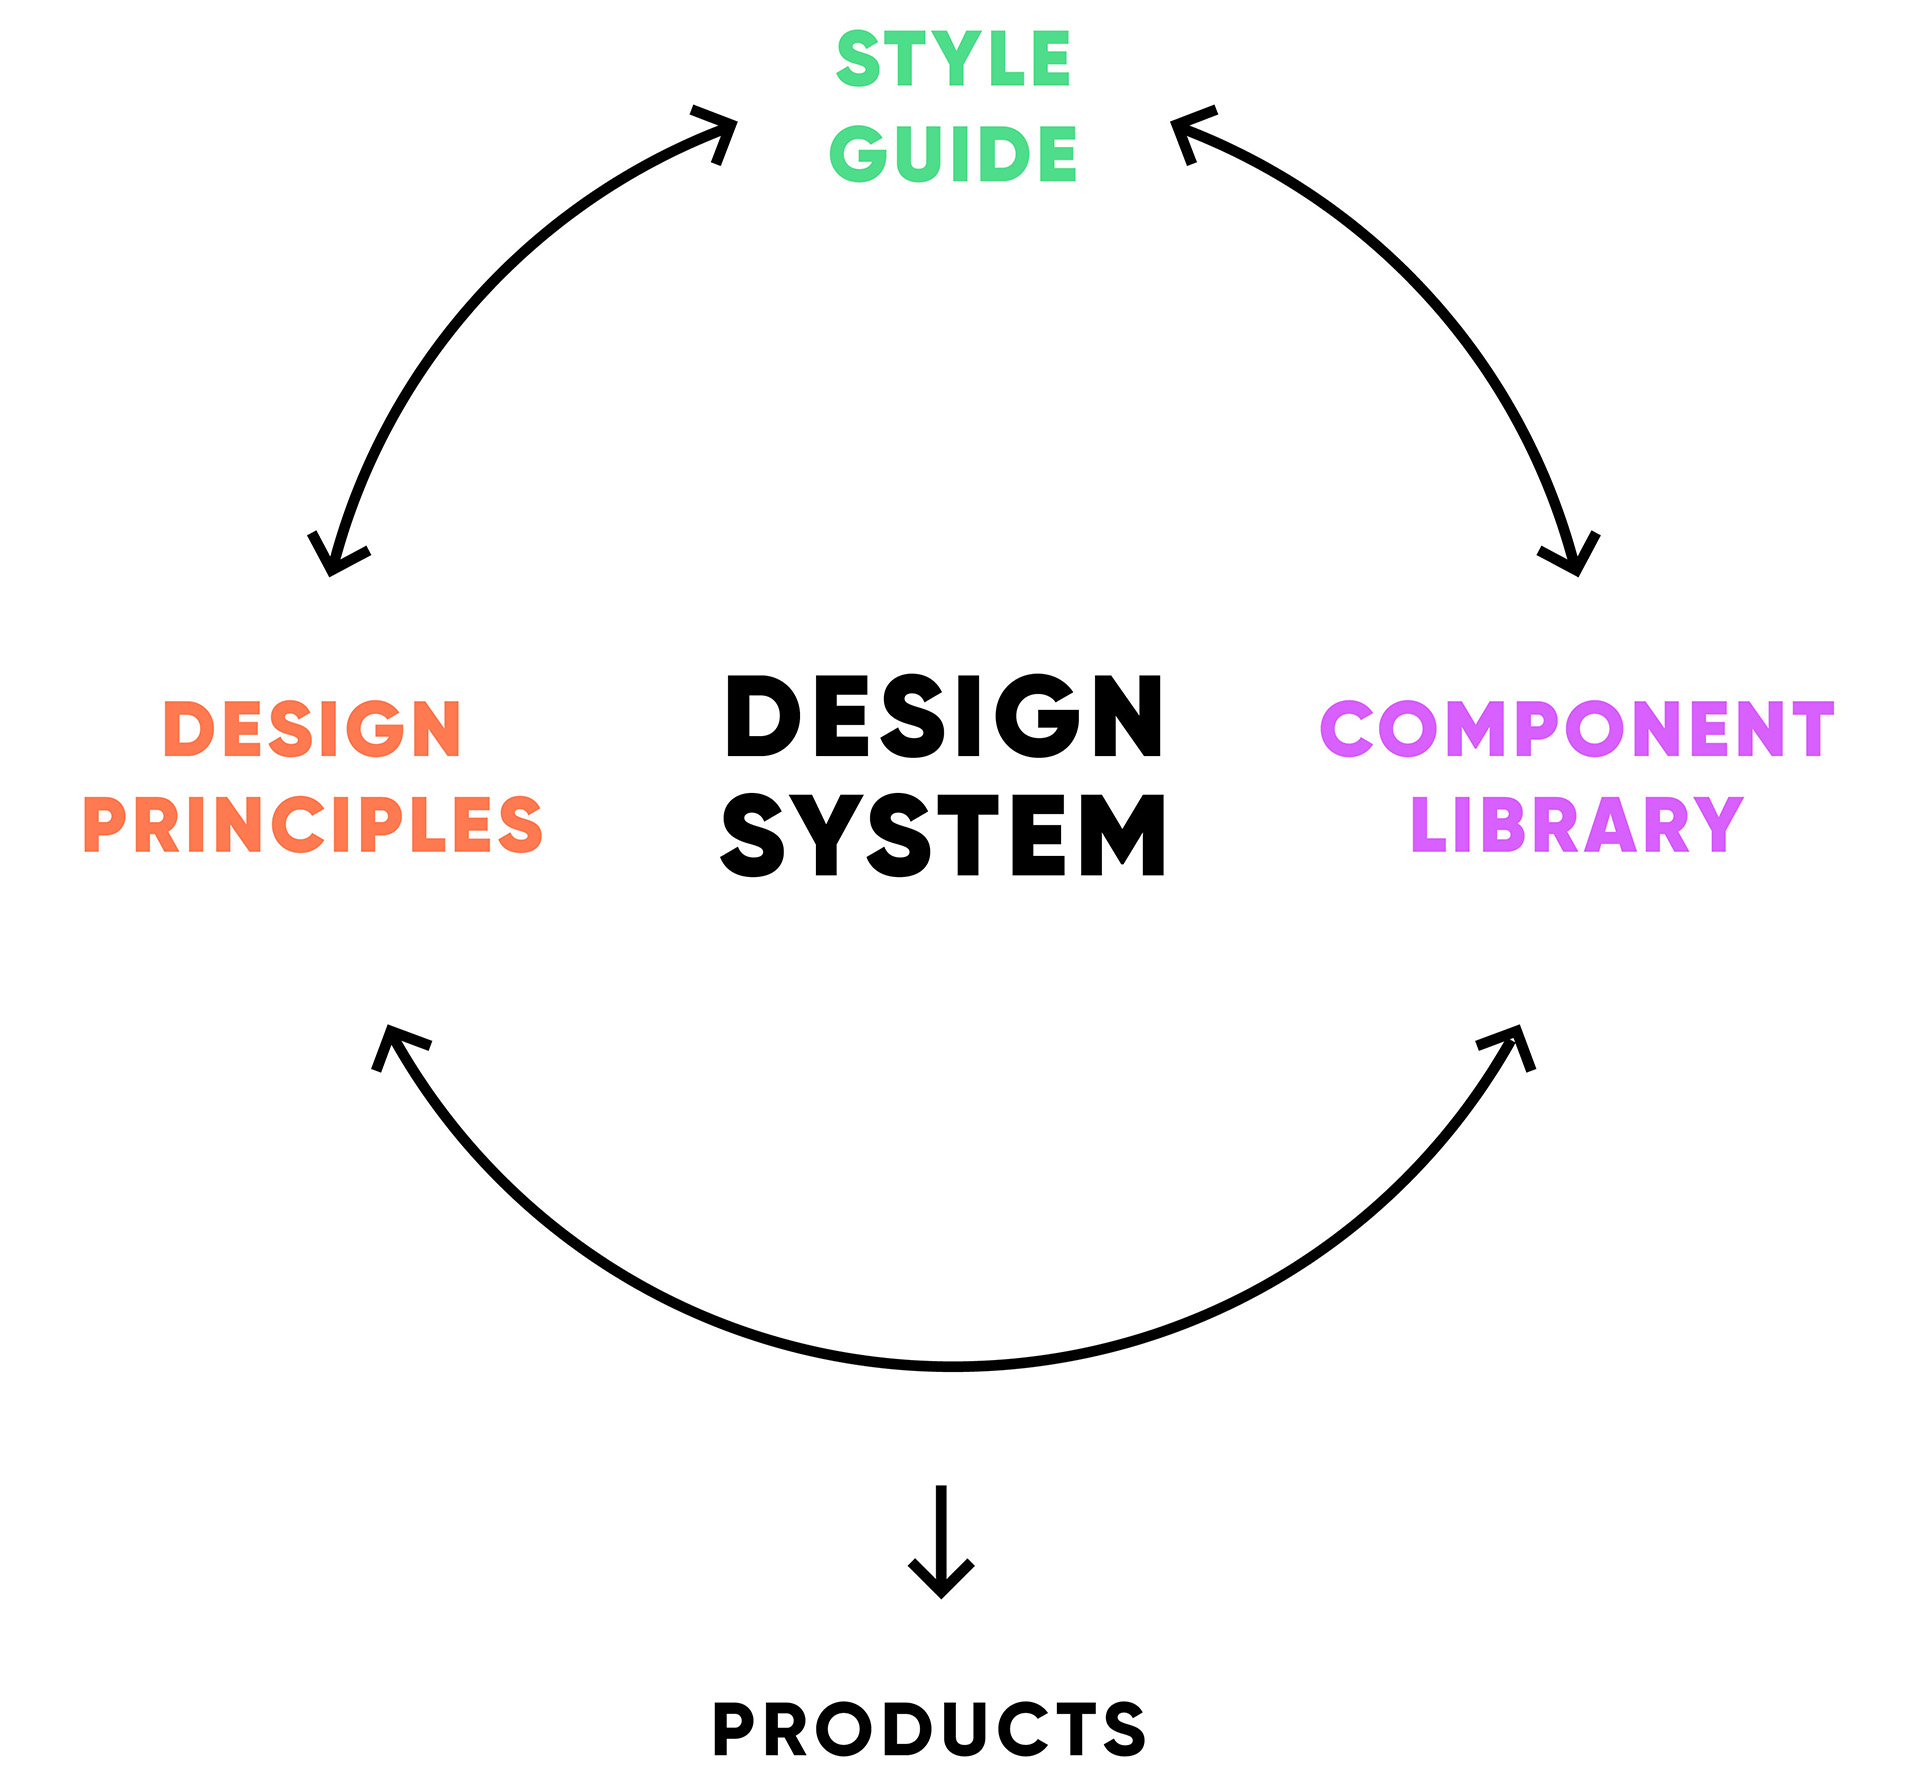 Components of a Design System